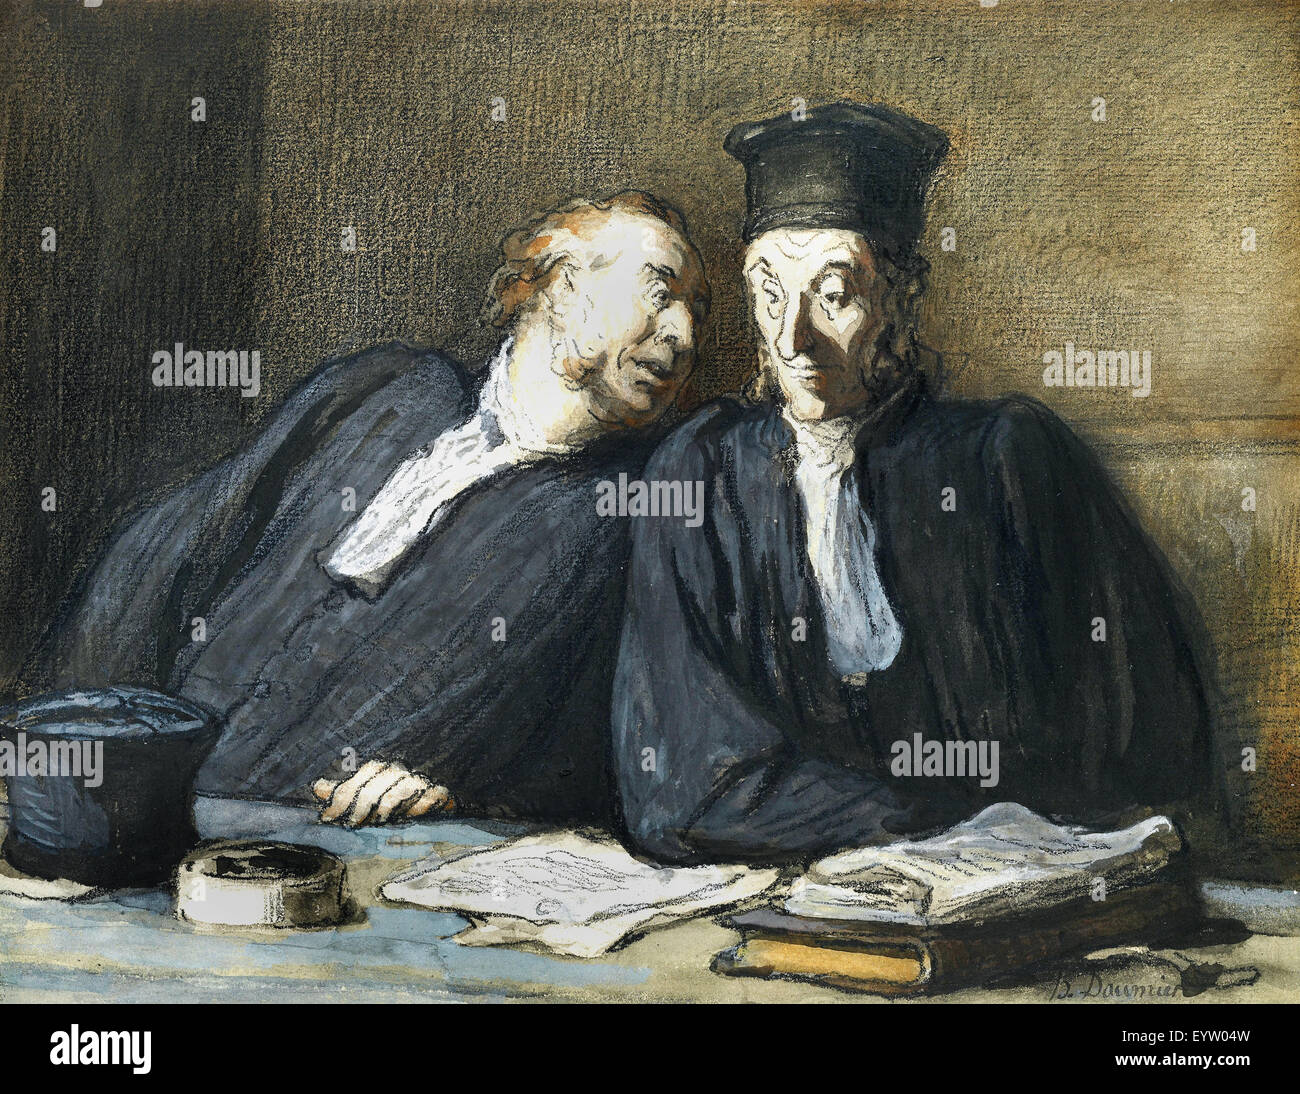 Honore Daumier, Two Lawyers Conversing 1808-1879 Black chalk, gouache, watercolor. The Morgan Library and Museum, - Stock Image